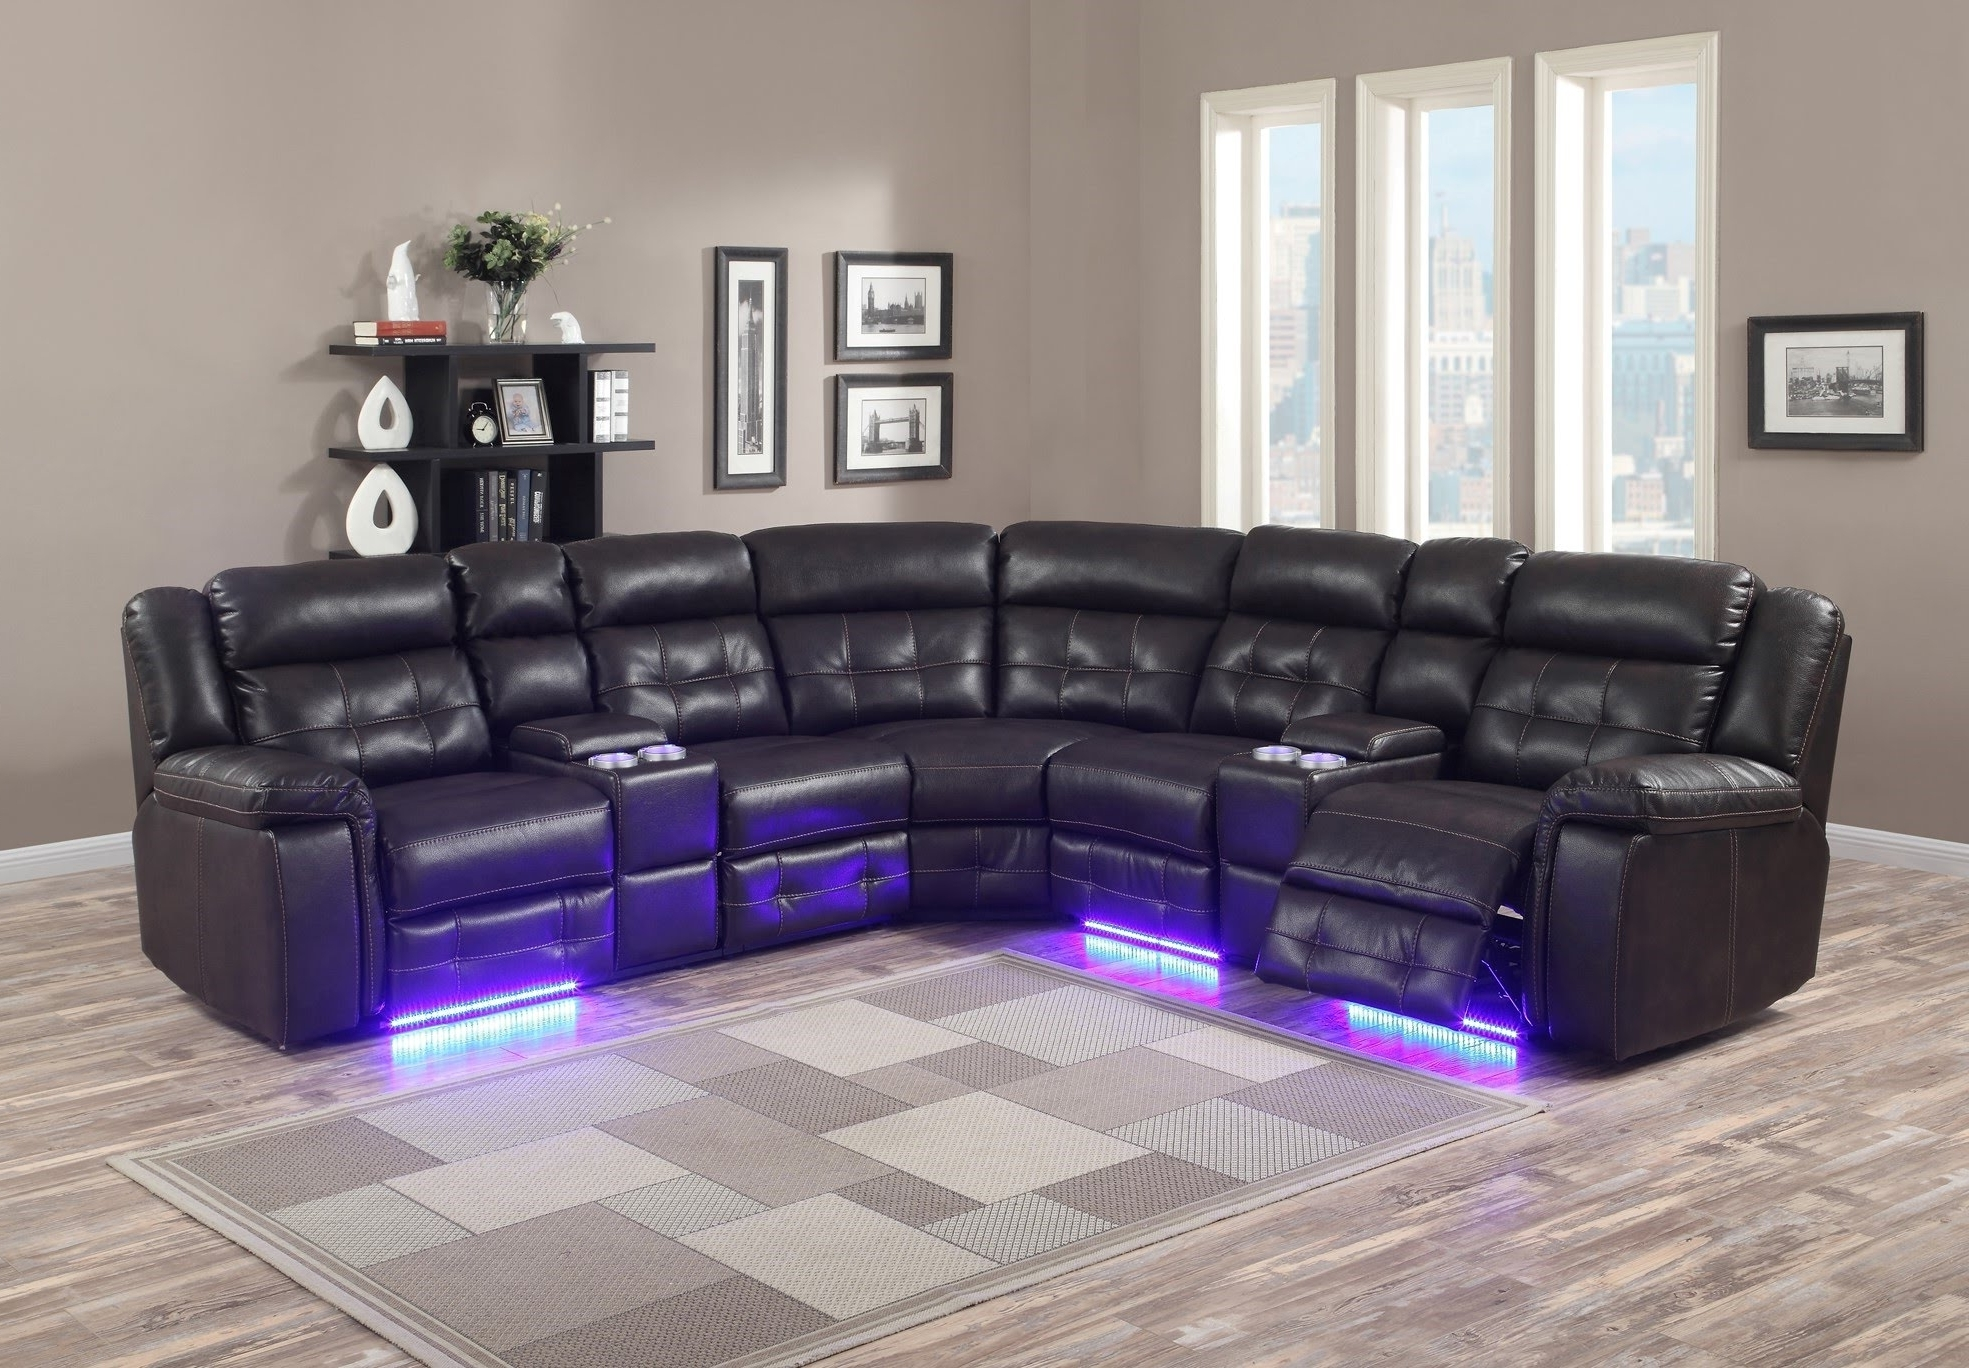 Most Popular Sectional Sofas At Brampton With Regard To Couch (View 10 of 20)